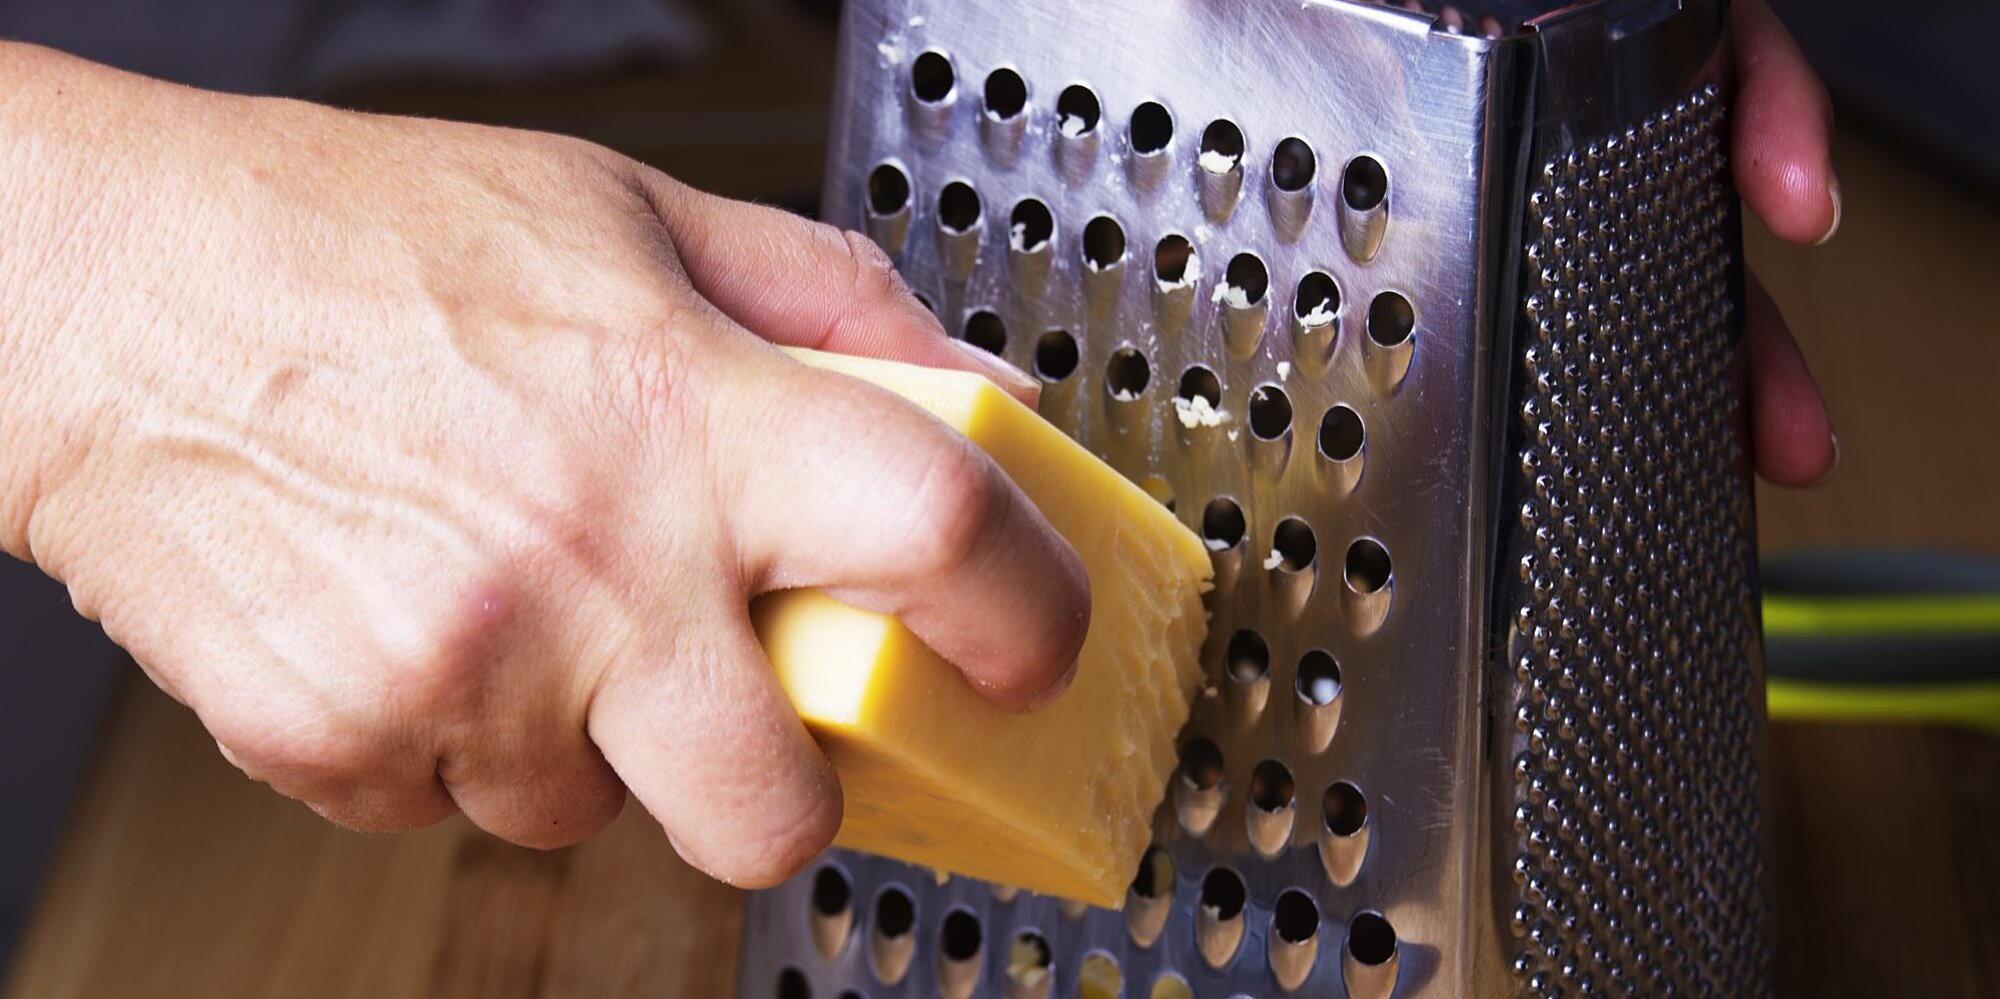 This Clever Hack Makes Grating Cheese Much Easier